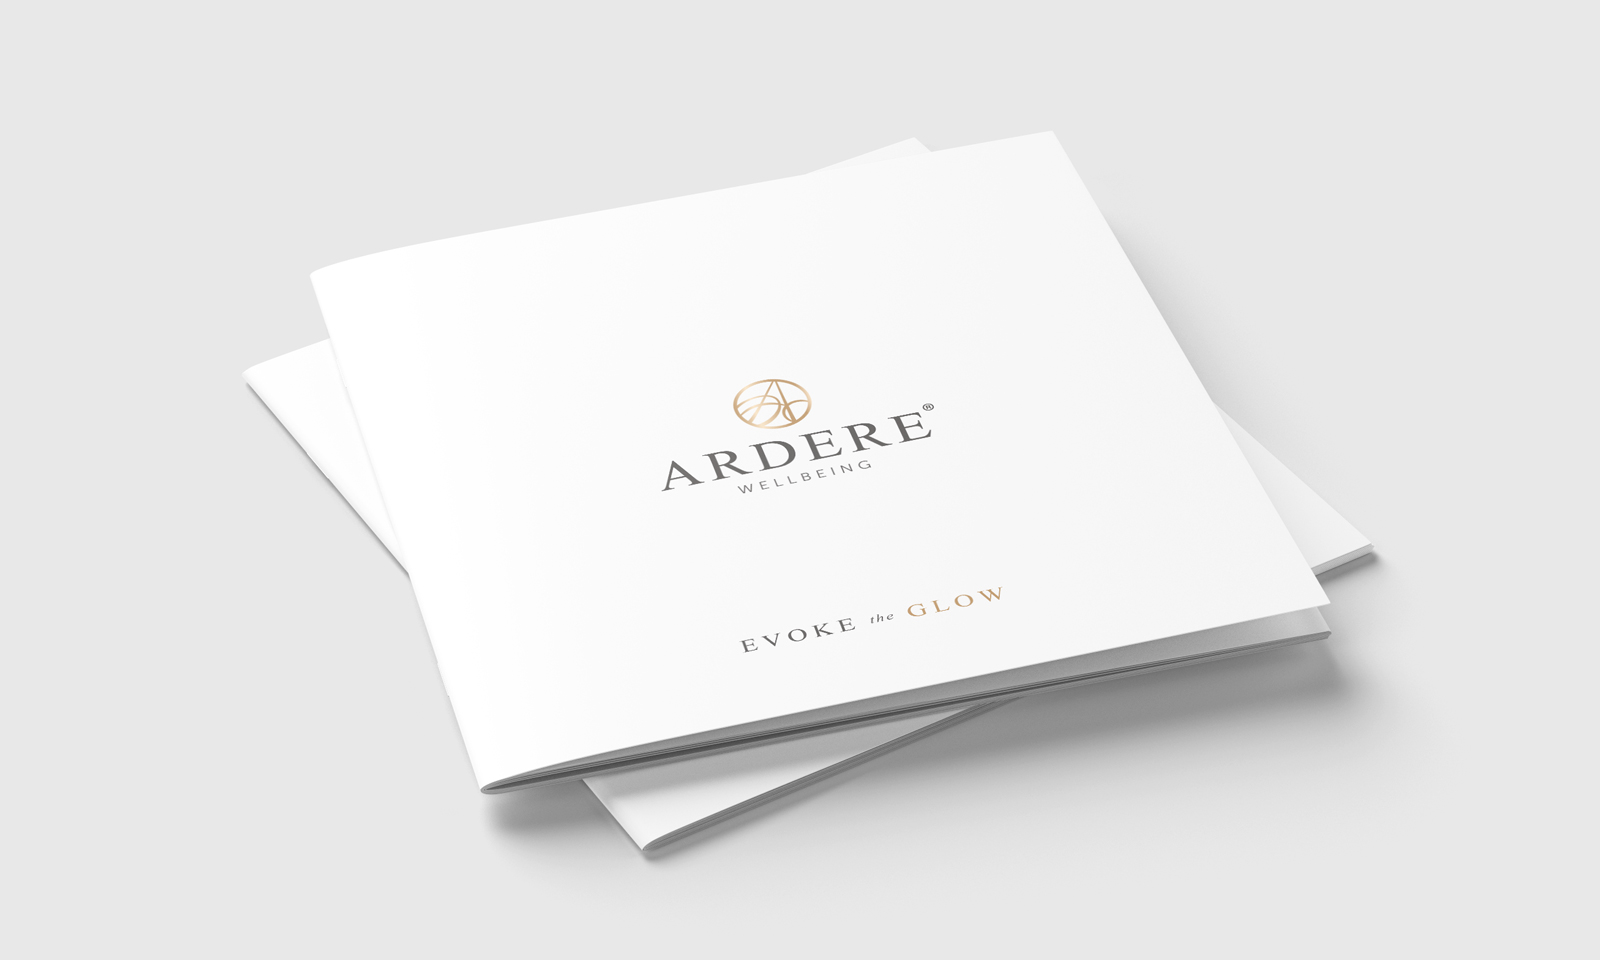 Ardere brochure cover